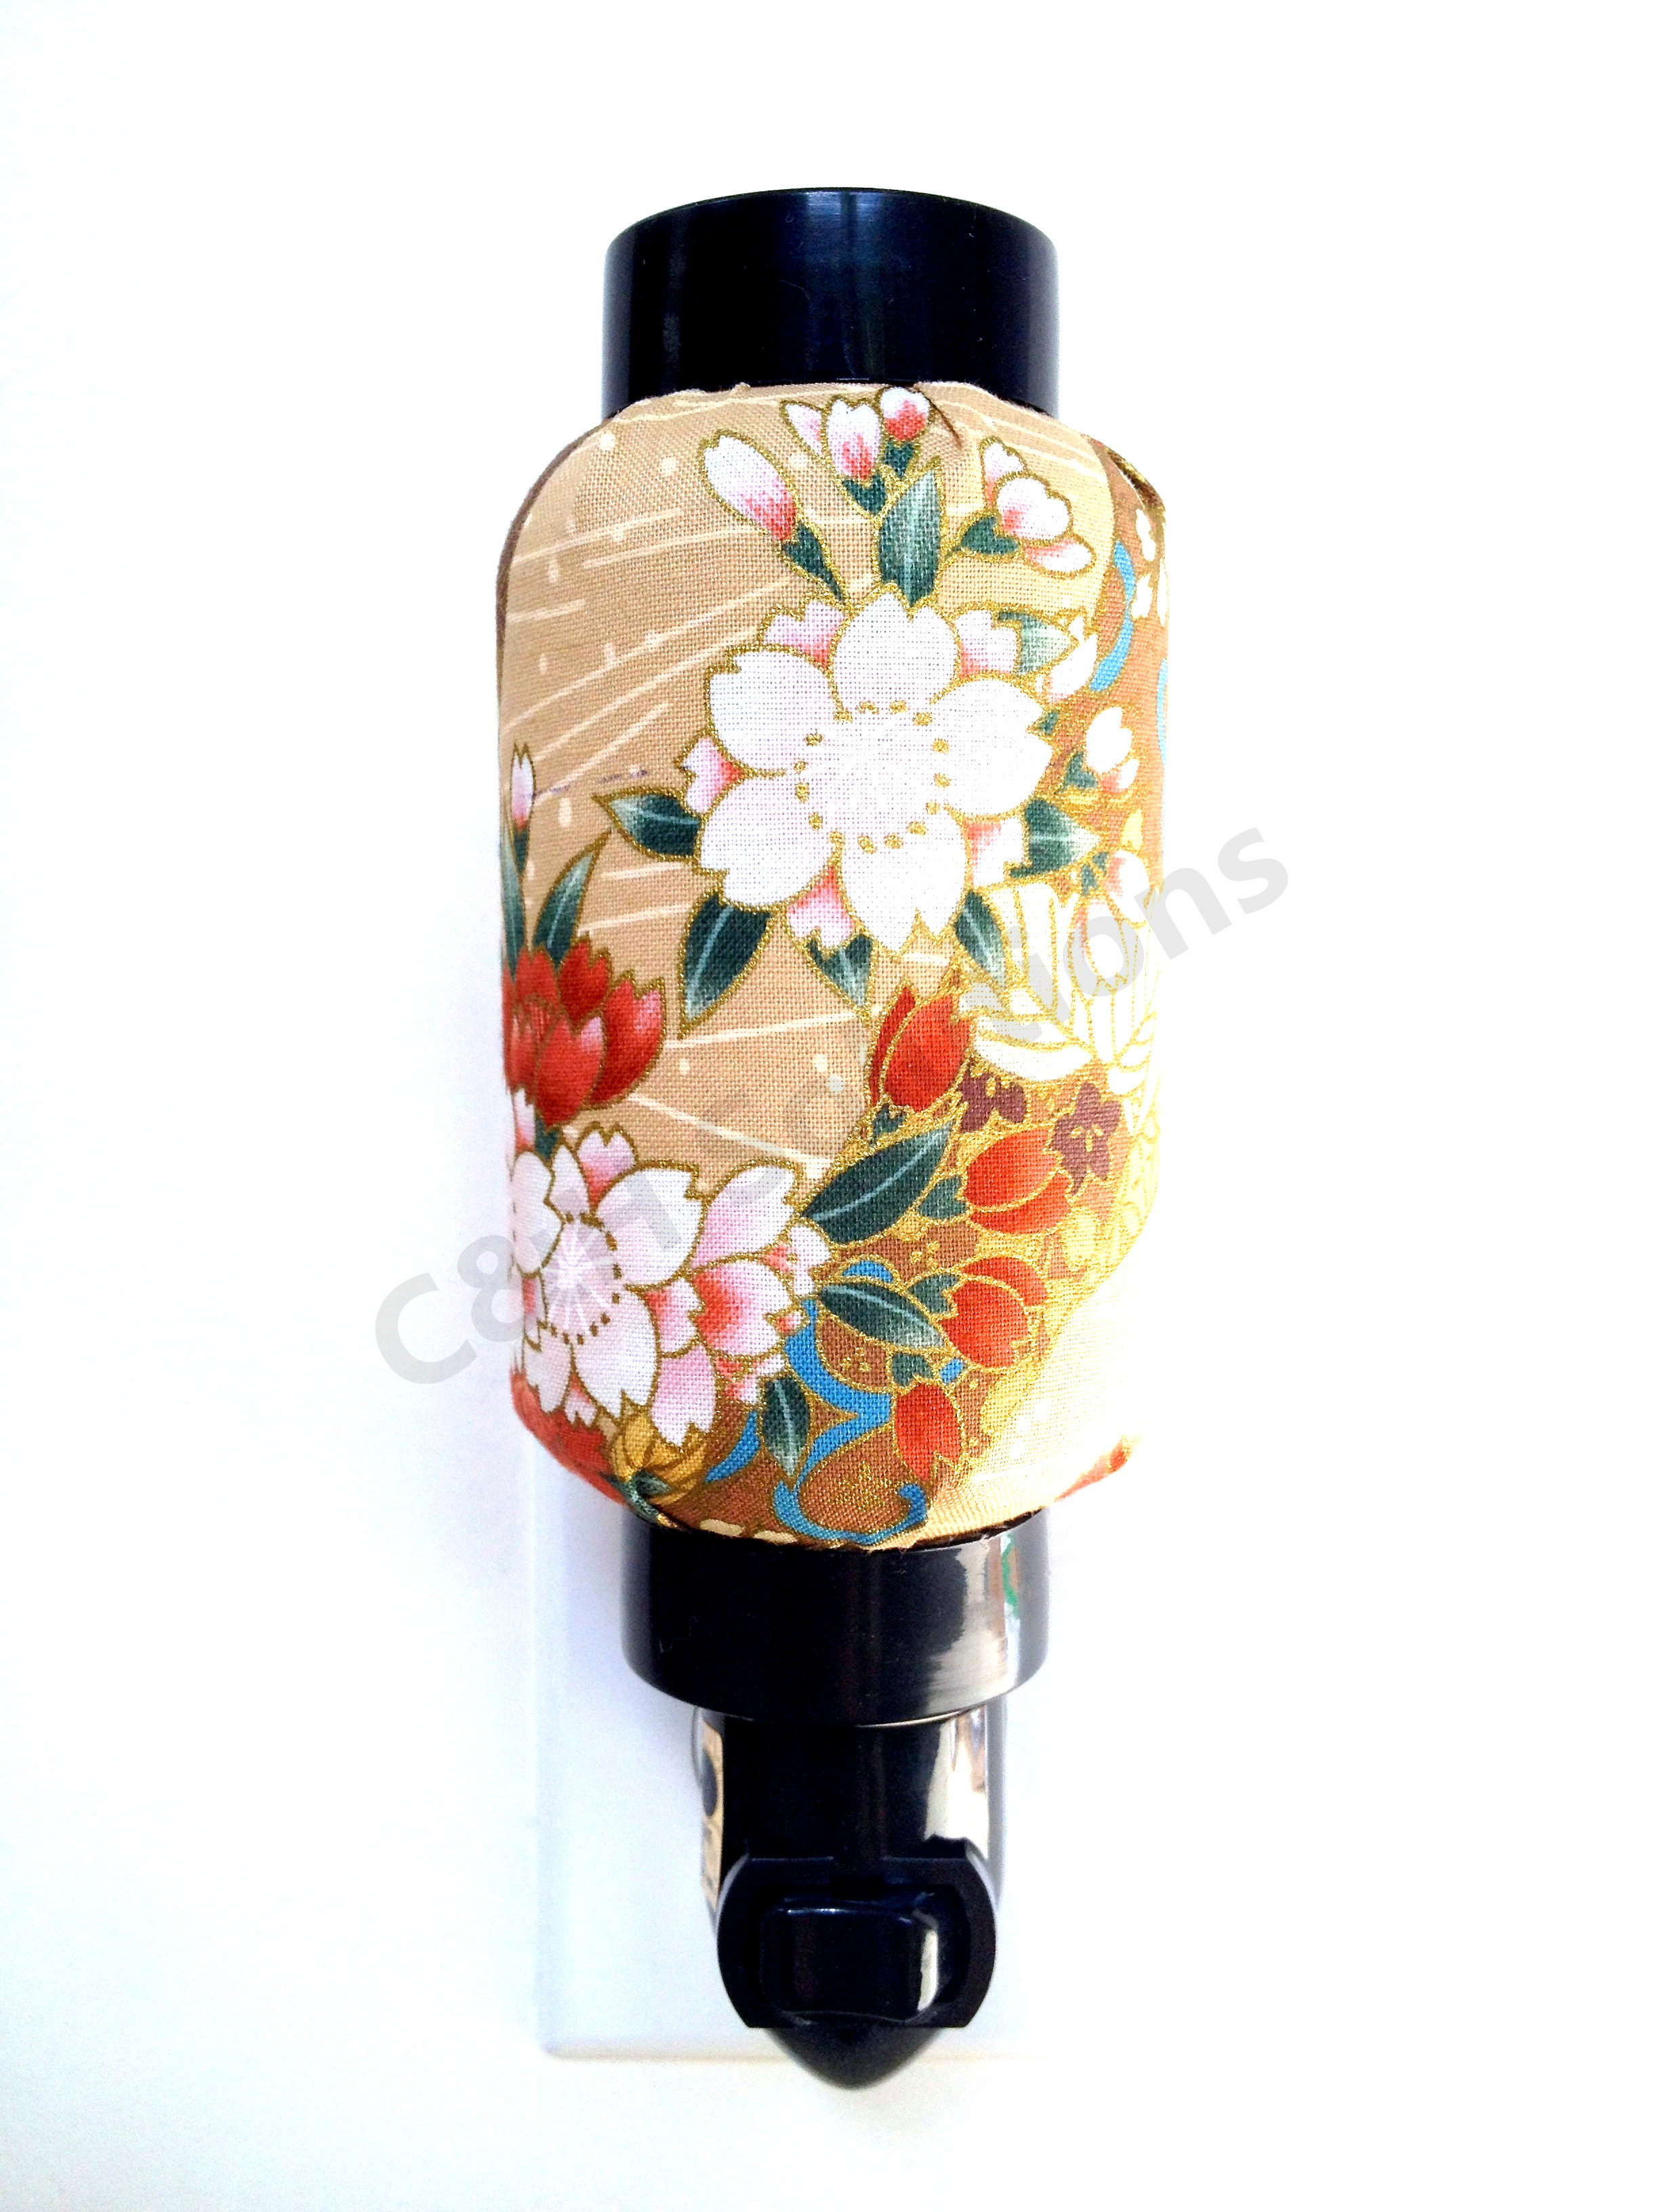 Eastern Classical Flower Japanese Oriental Style Decorative Night Light